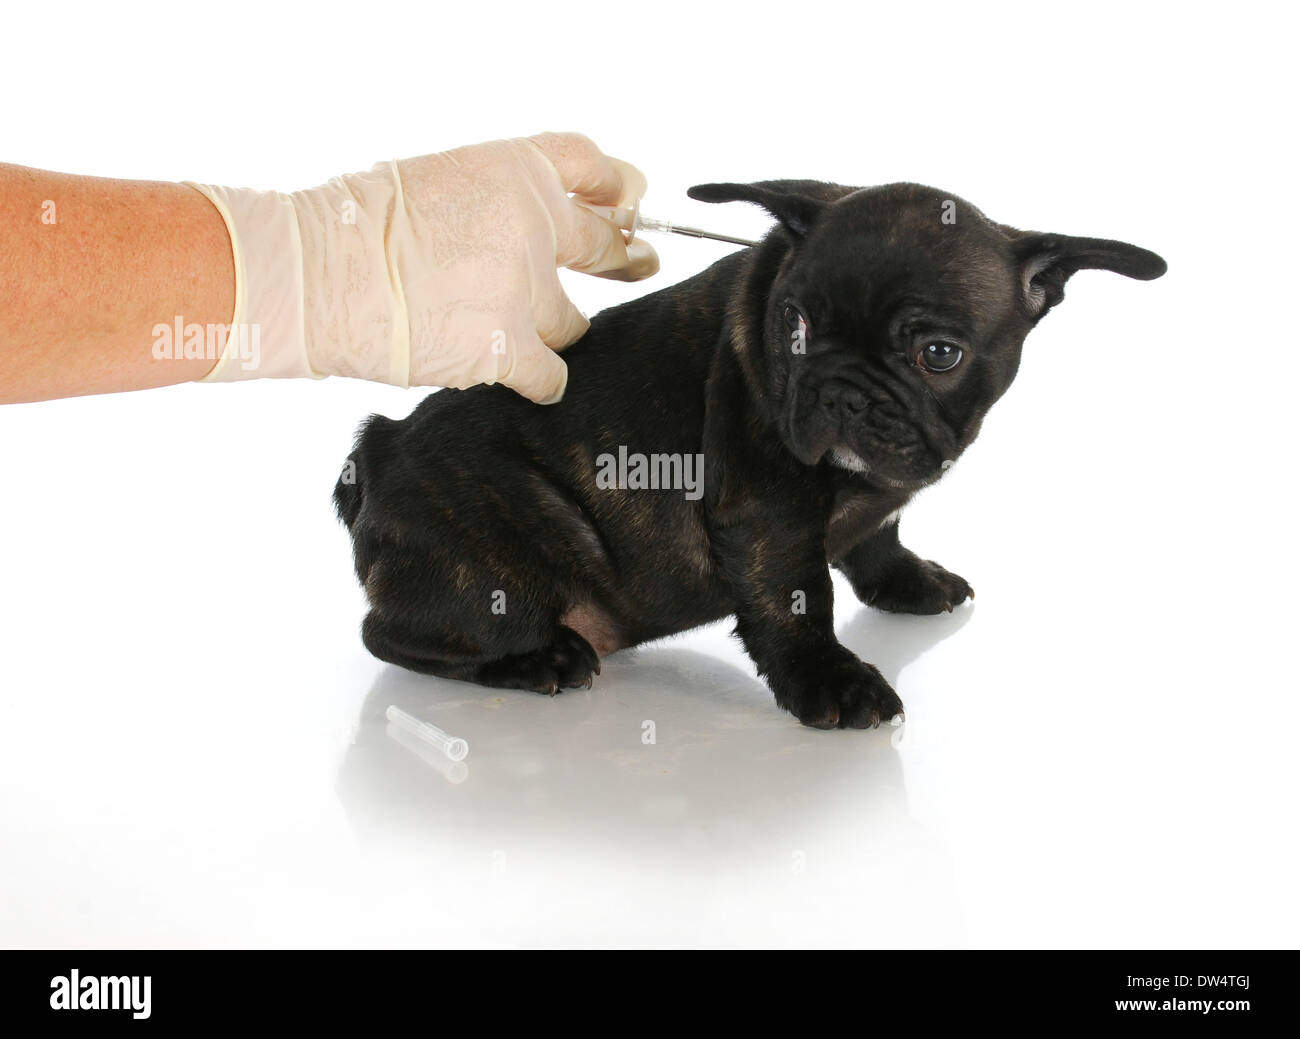 microchipping puppy - french bulldog puppy being microchipped - 8 weeks old - Stock Image